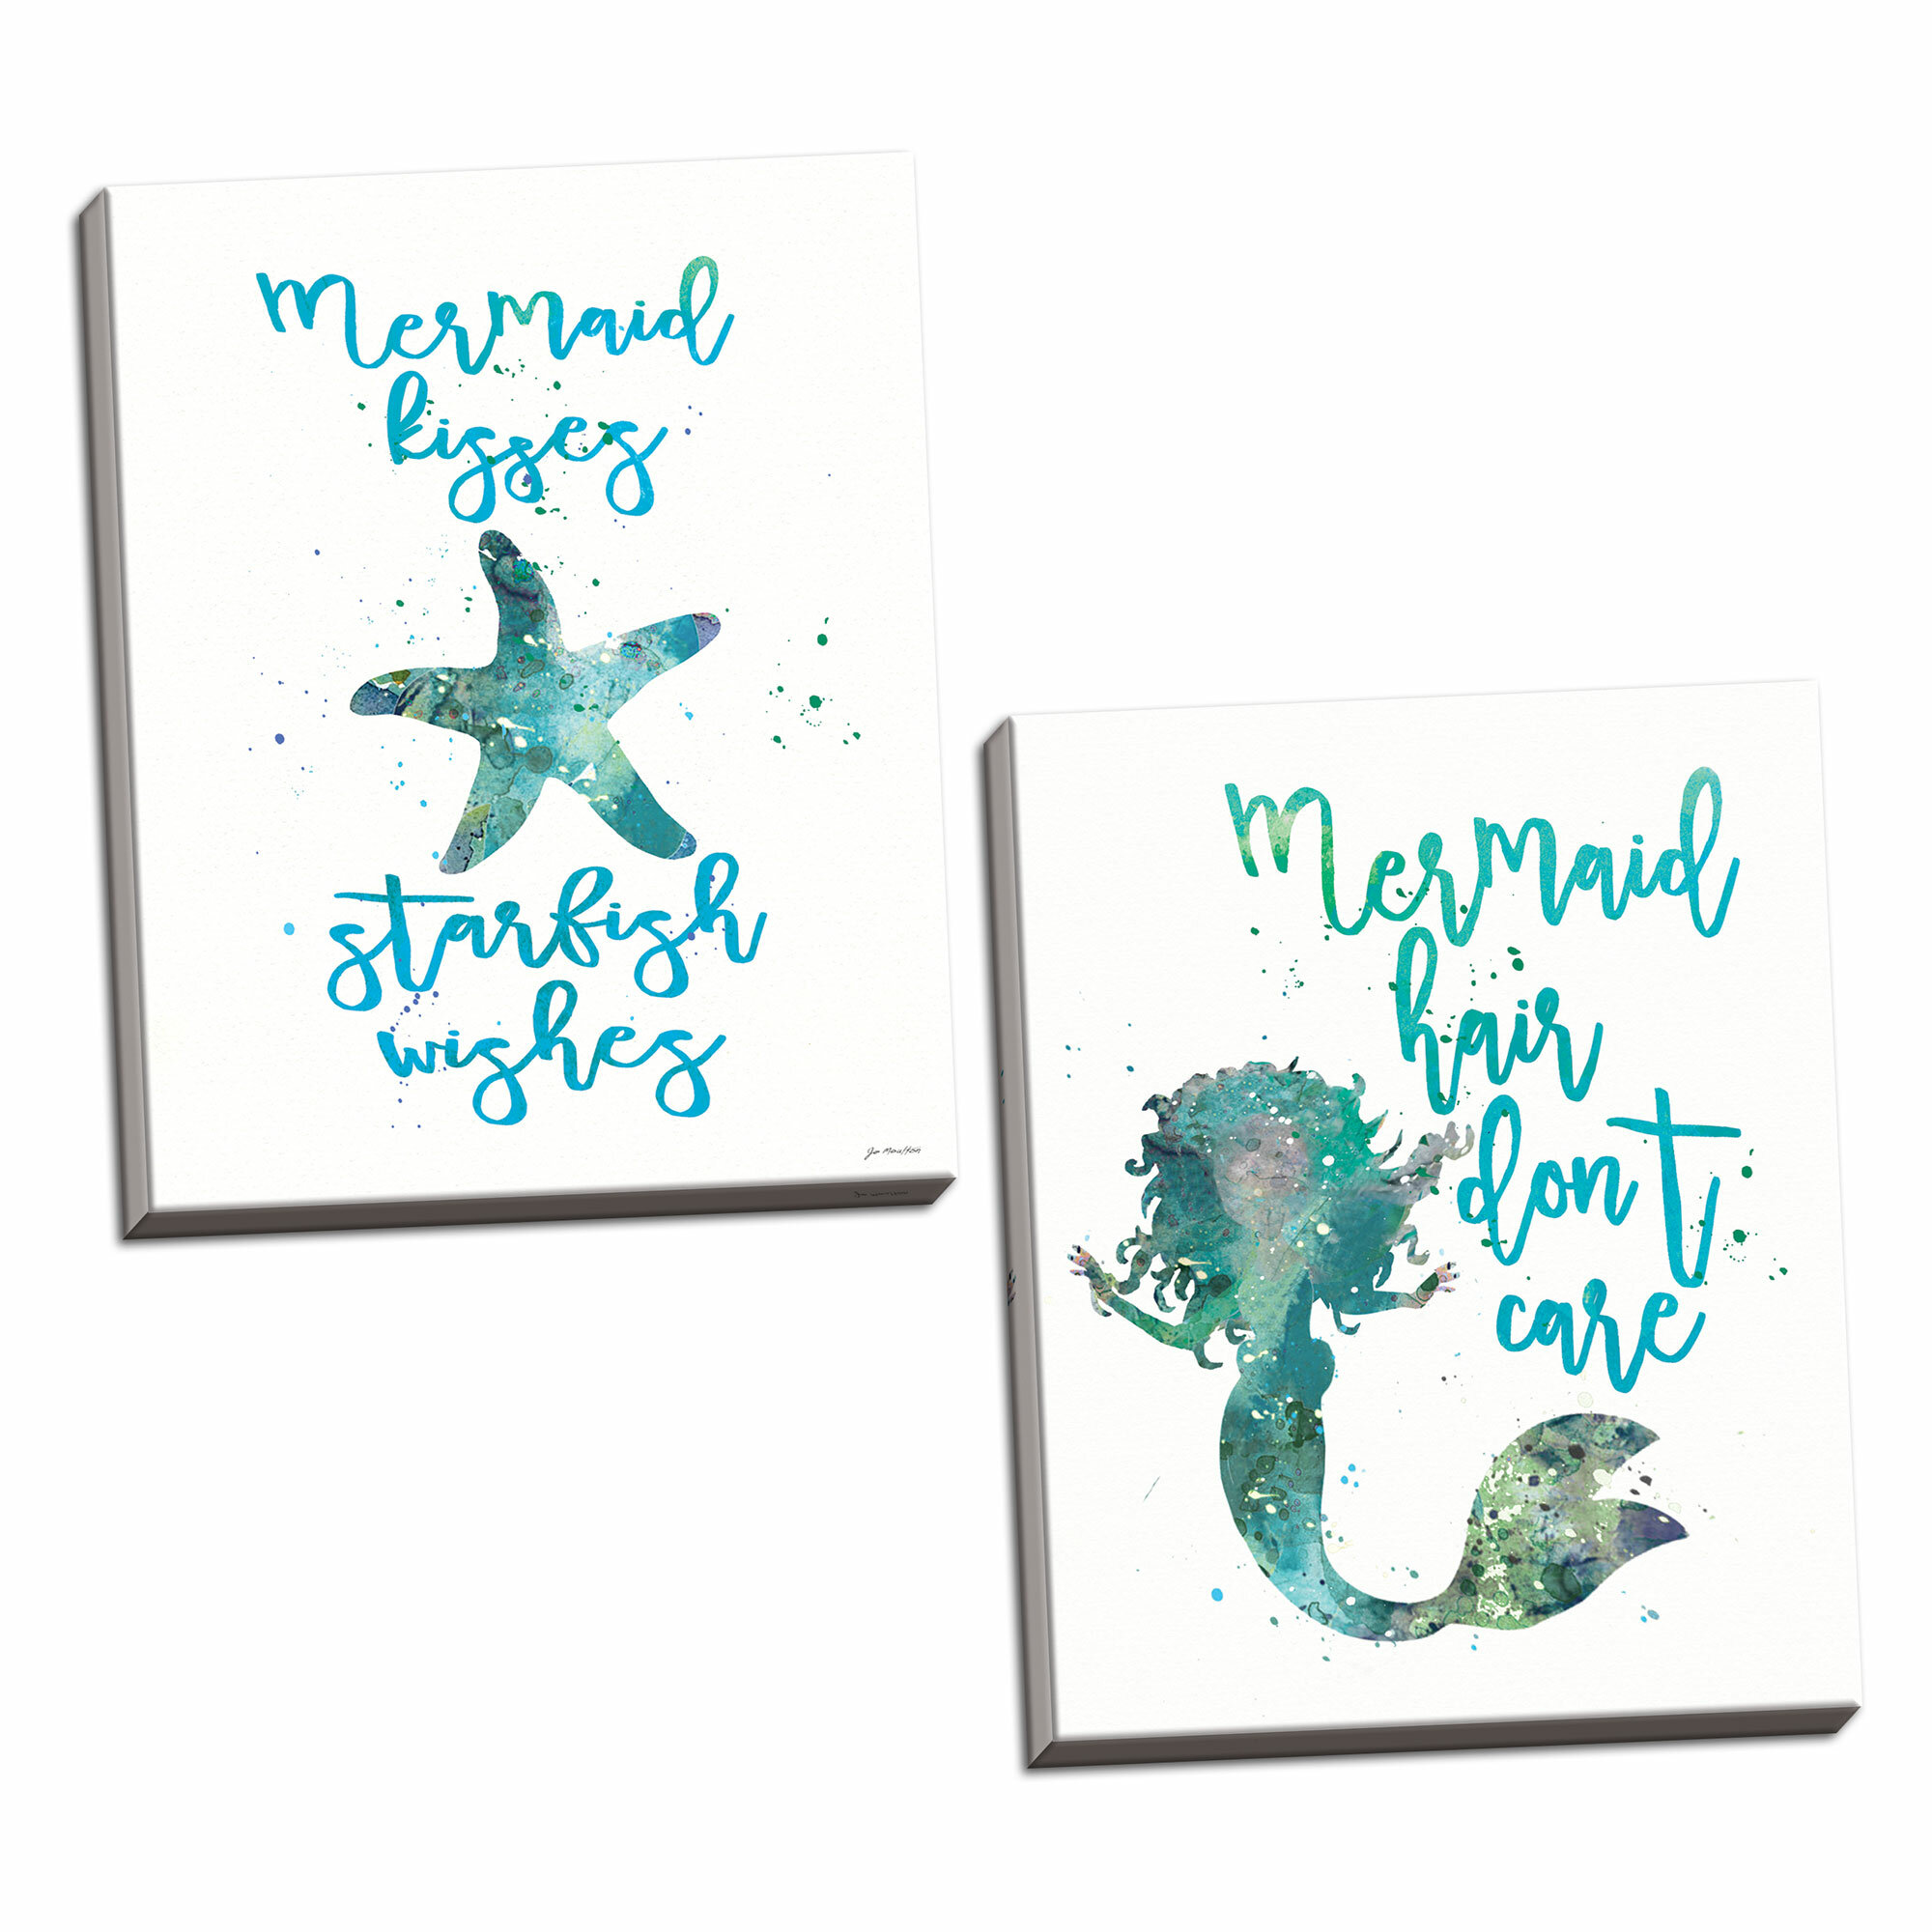 36a4aa354 Rosecliff Heights Chelvey Beautiful Nautical Teal and Blue 'Mermaid Hair  Don't Care and Mermaid Kisses, Starfish Wishes' Print | Wayfair